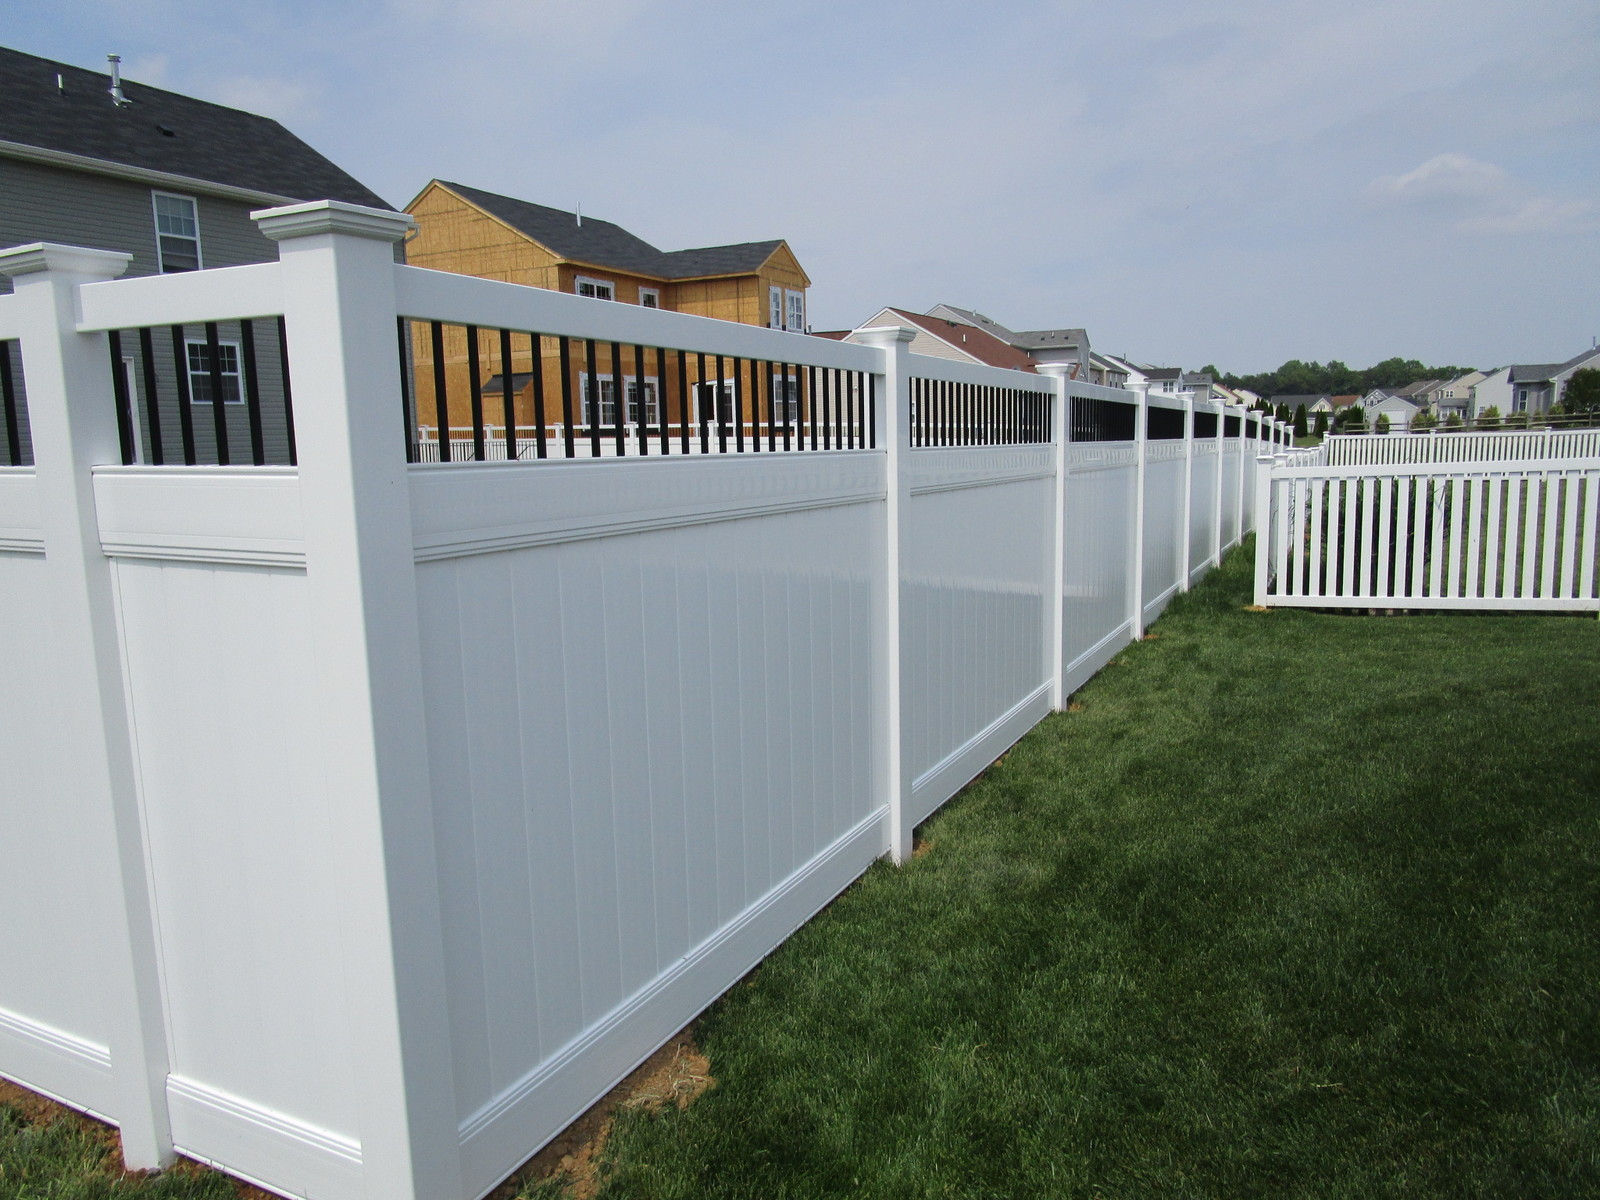 Vinyl Forrest Fencing Fence Gate For Transitional Putting Up Electric 109 Privacy With Black Spindles Grace Closed Top